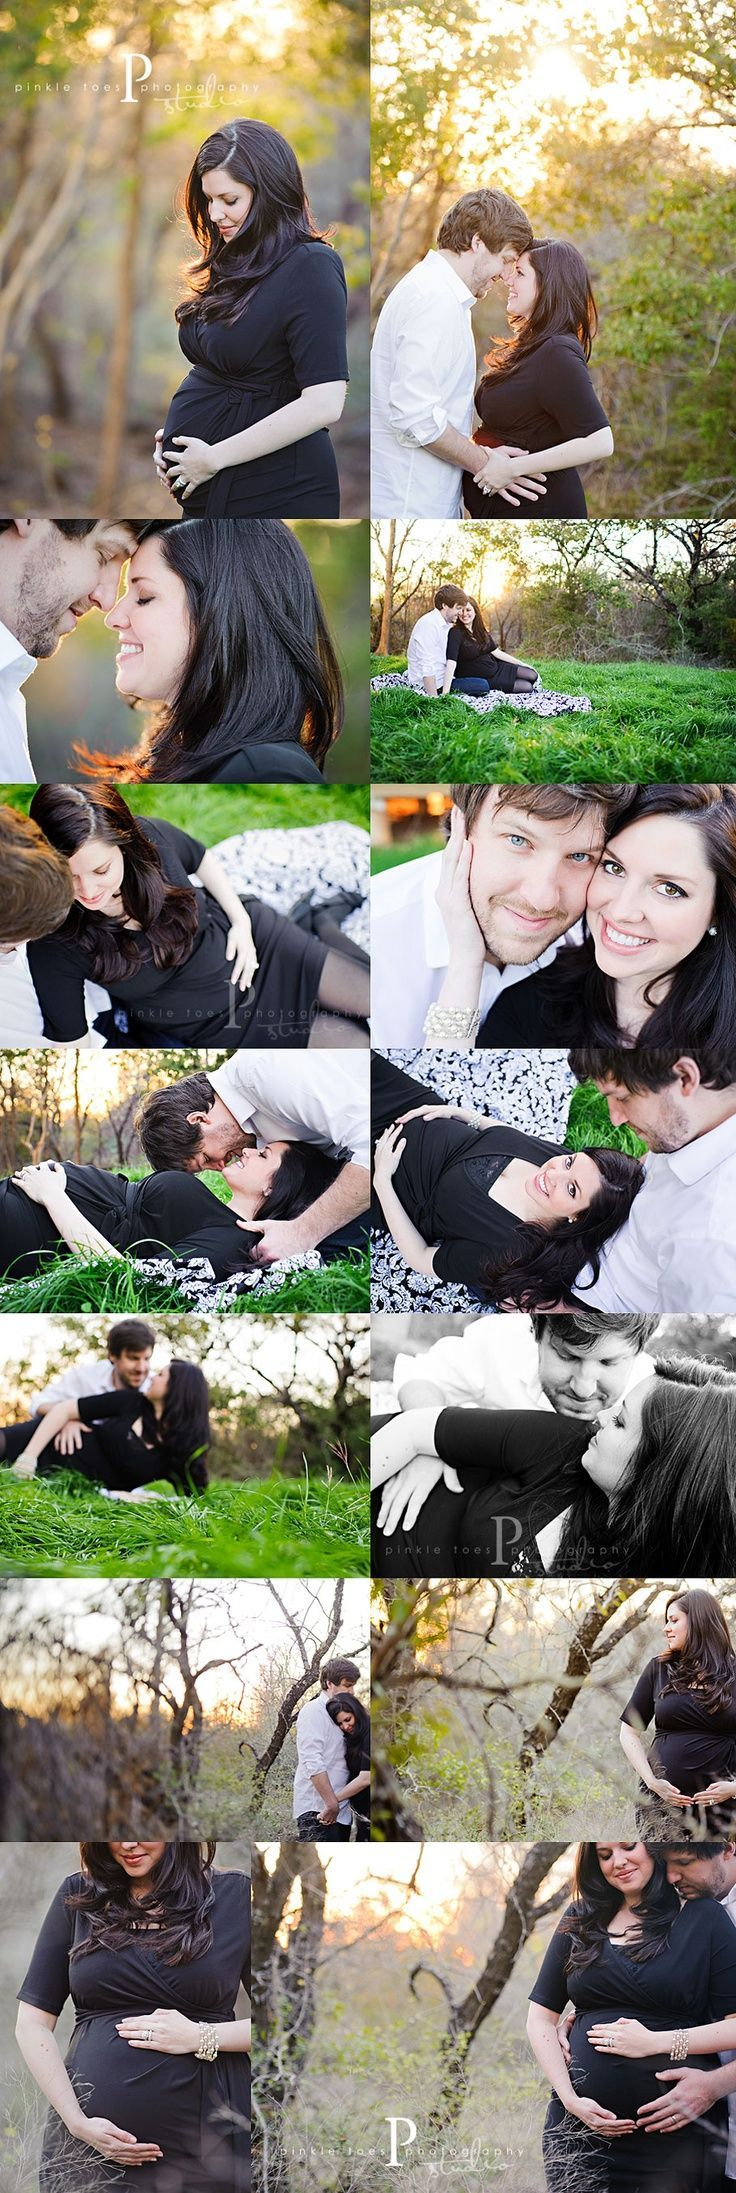 Couple Pregnancy Photography Poses | maternity | Photography Poses (Couples & Maternity) #pregnancyphotography